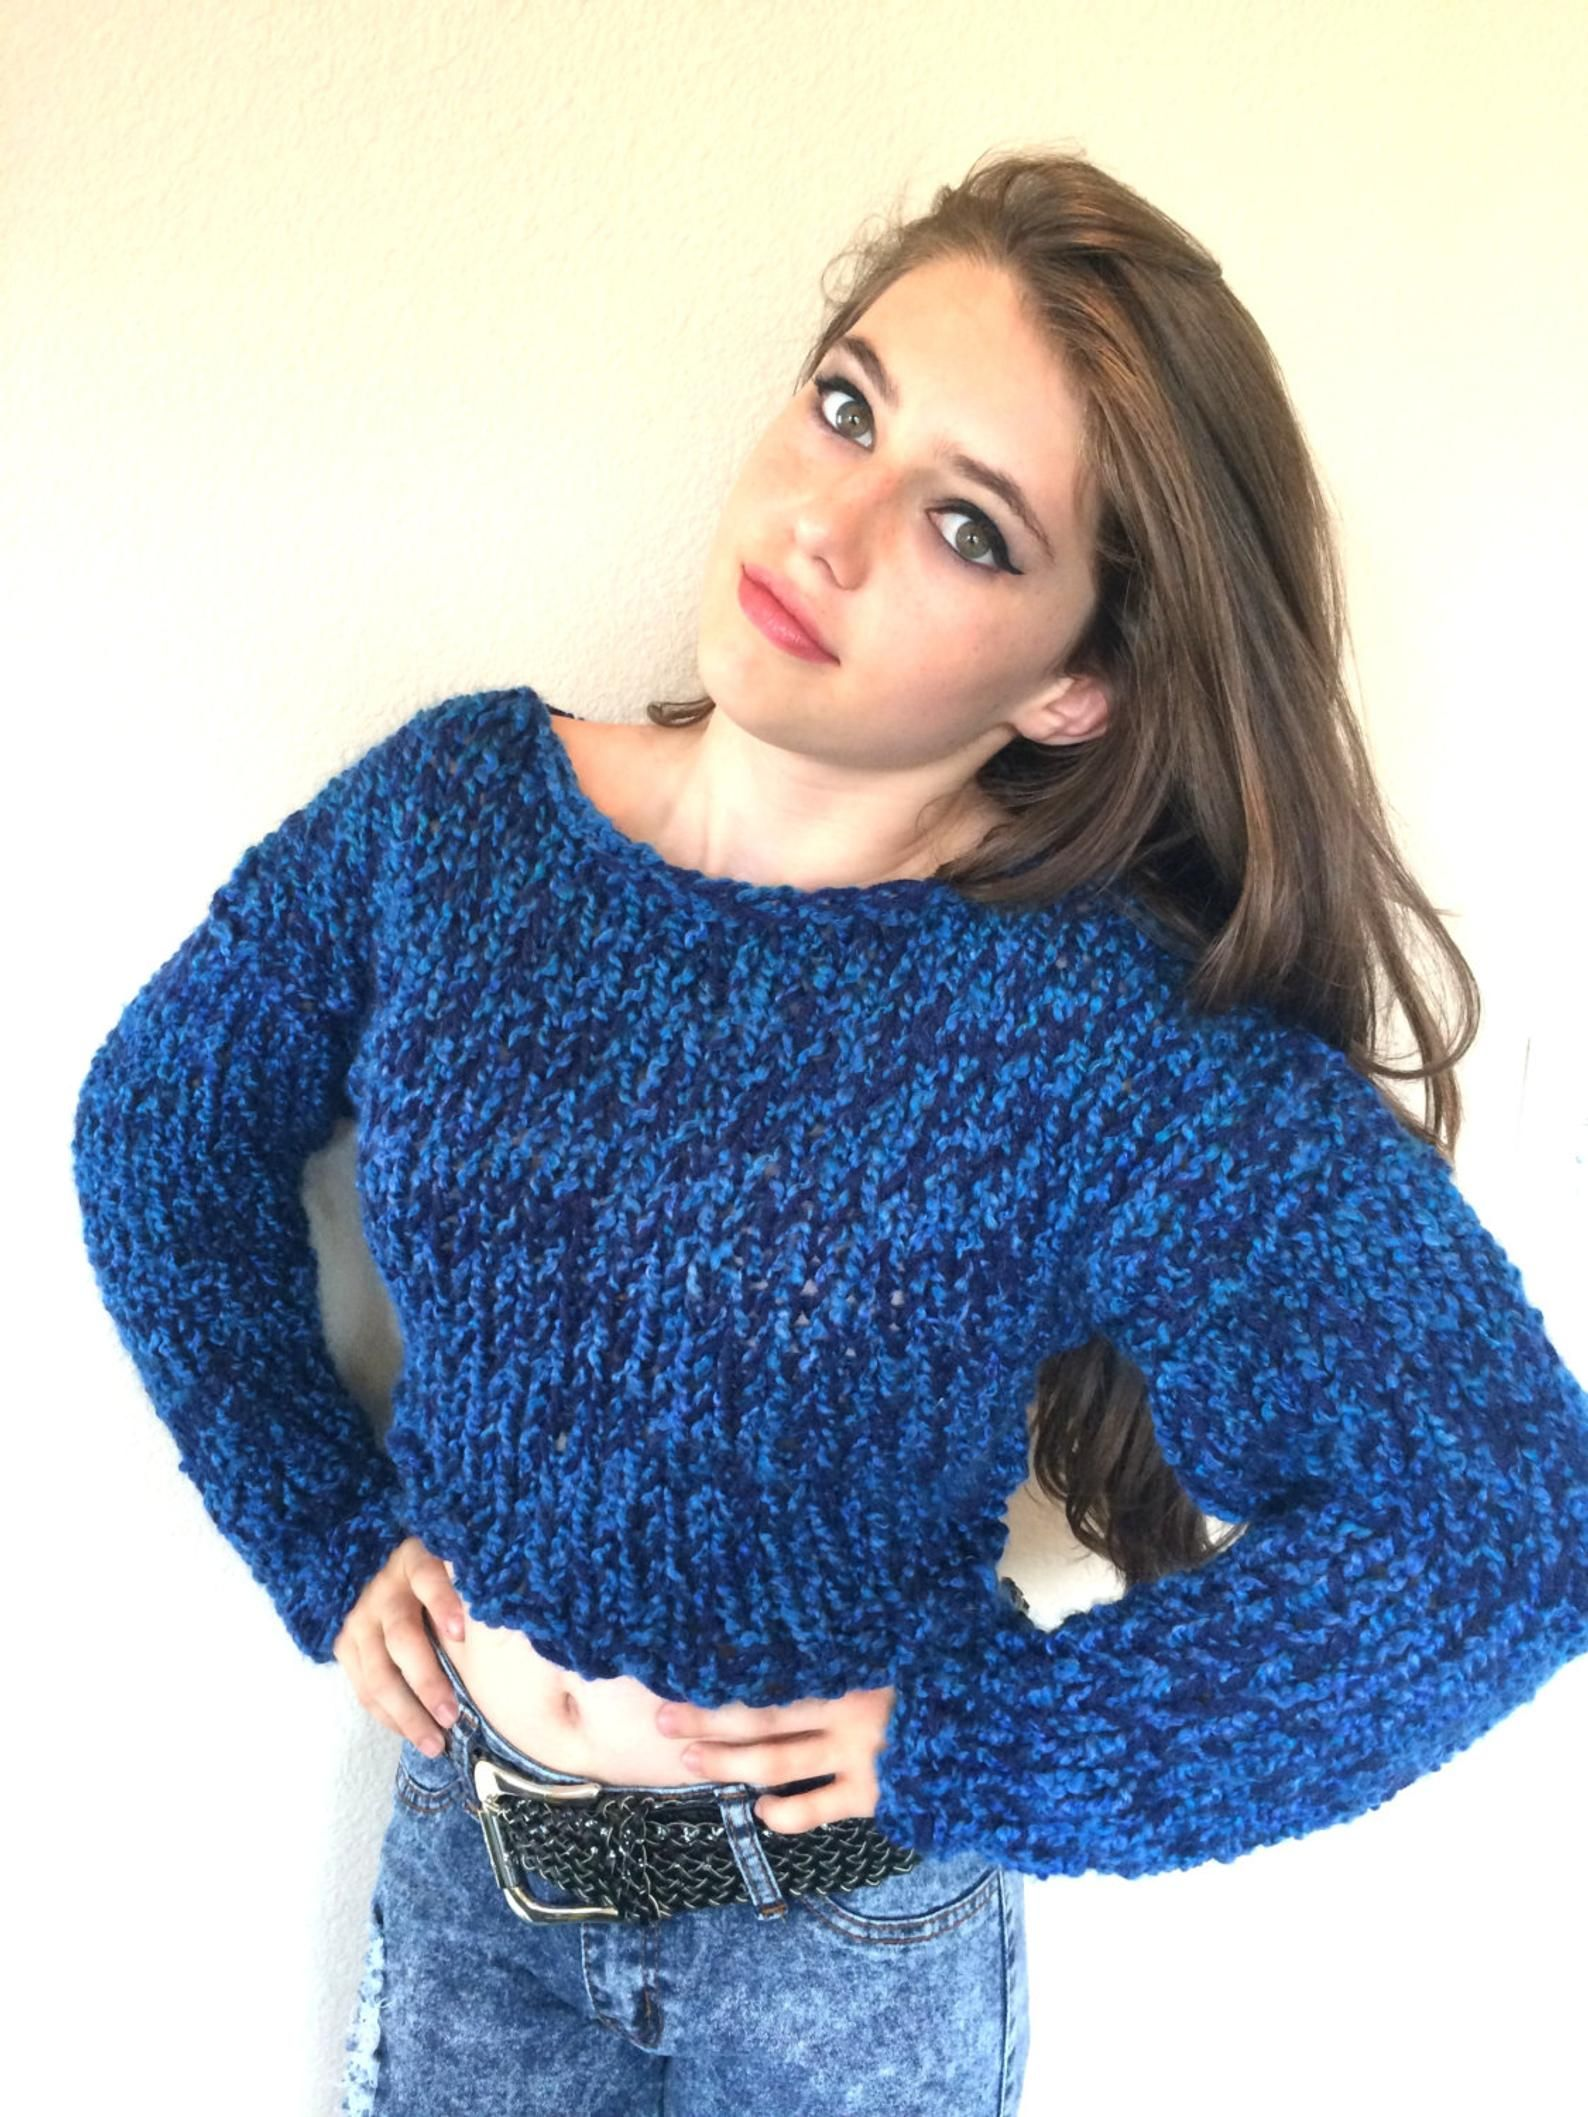 Hand-knit boy or girl boatneck turquoise and white patterned sweater